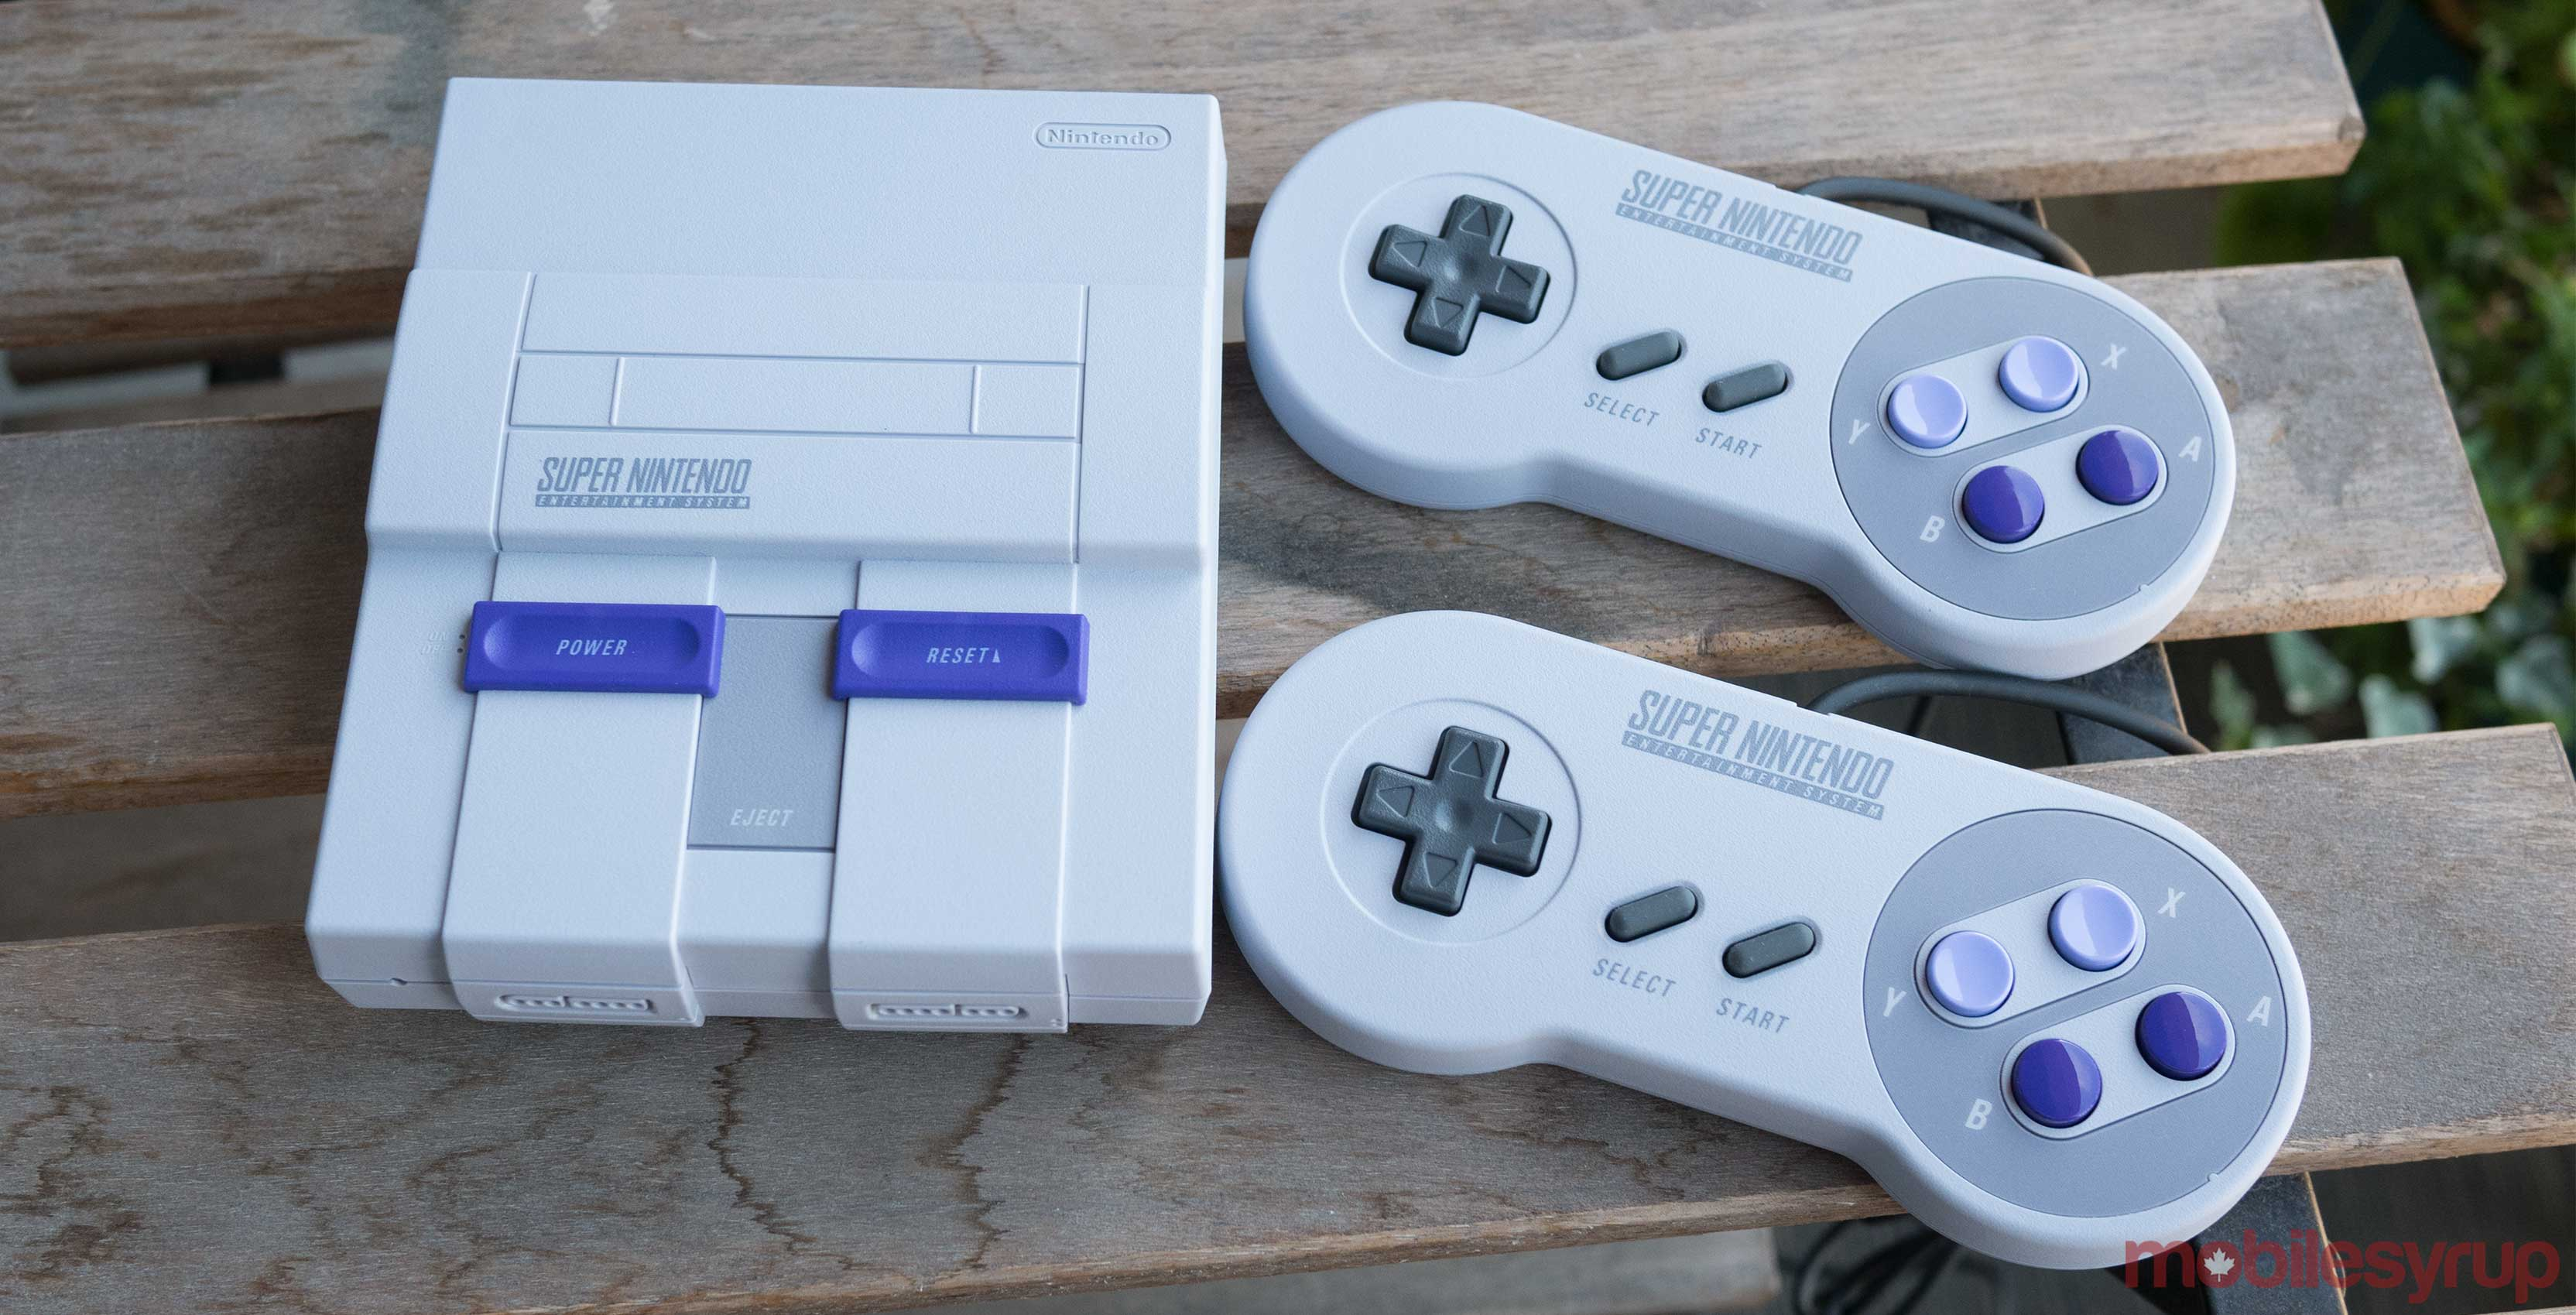 SNES Classic Edition with remotes